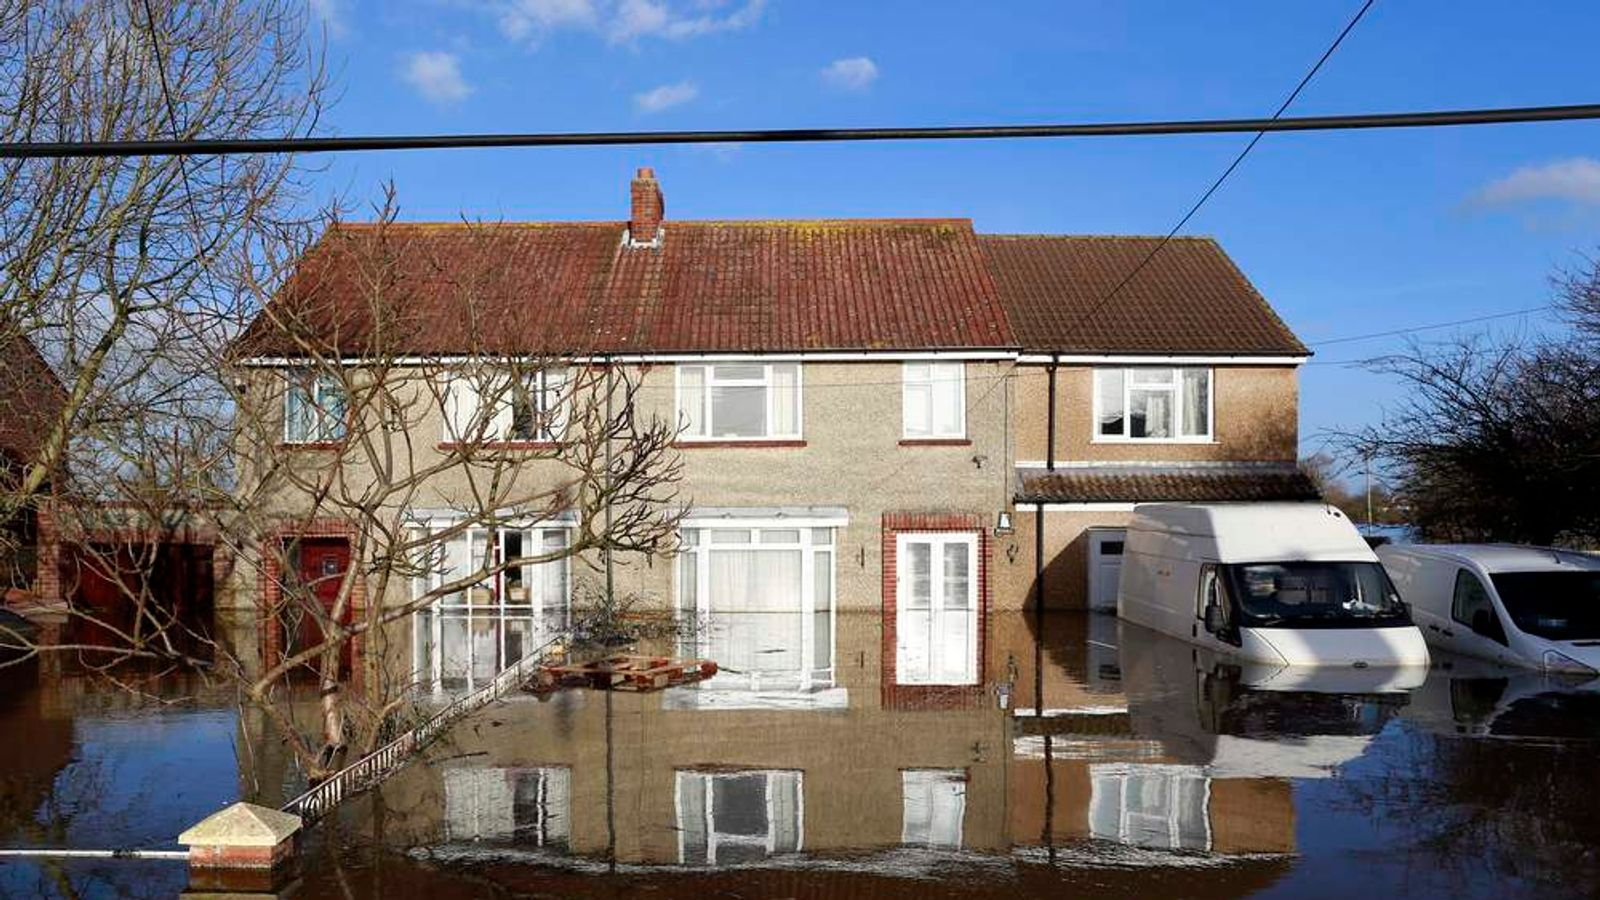 Stranded vehicles are seen in urban landscape taken in the flooded Somerset village of Moorland